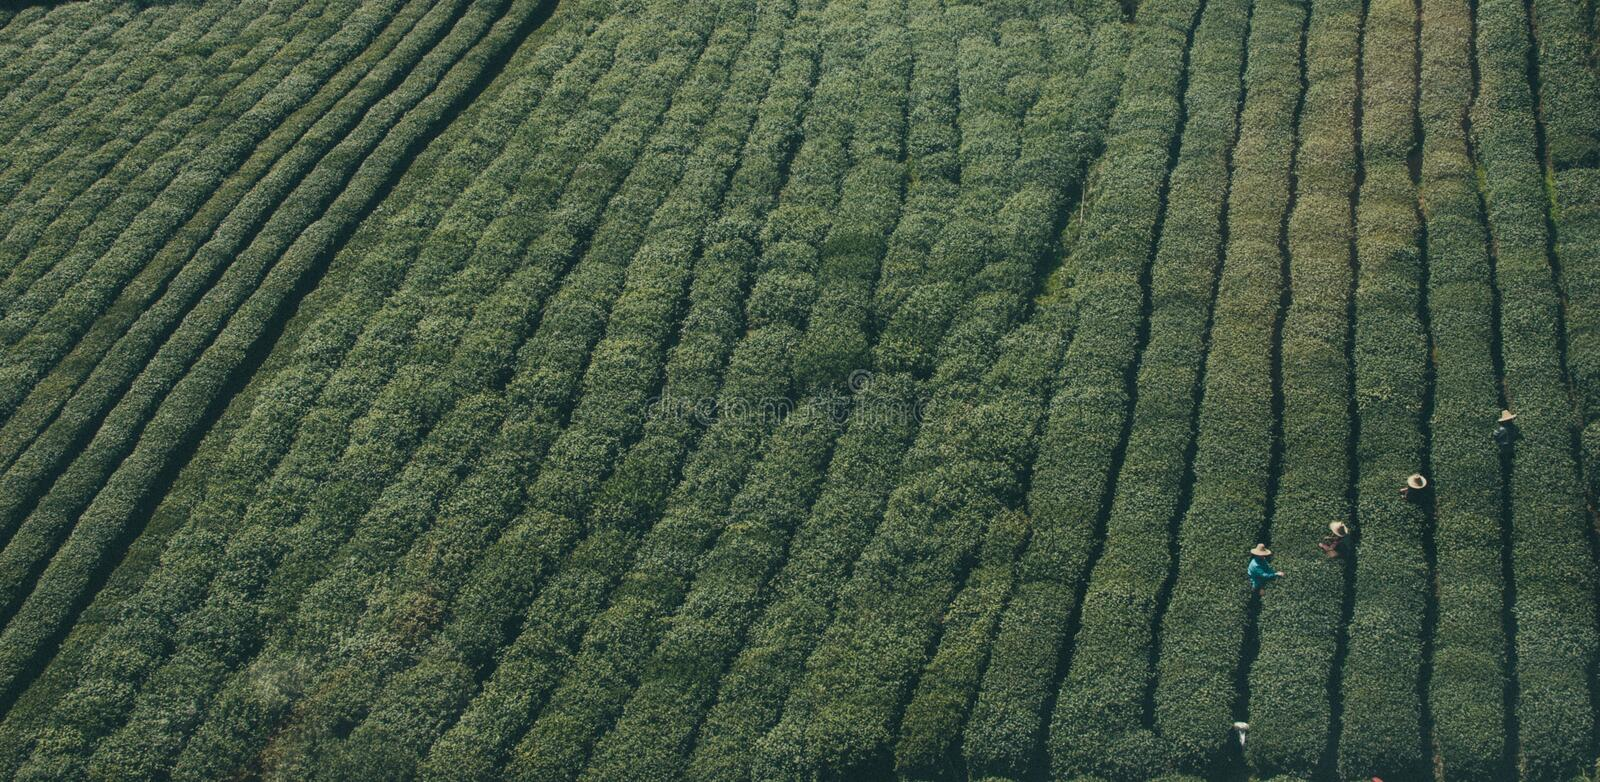 Aerial View Of Workers In Tea Plantation Free Public Domain Cc0 Image